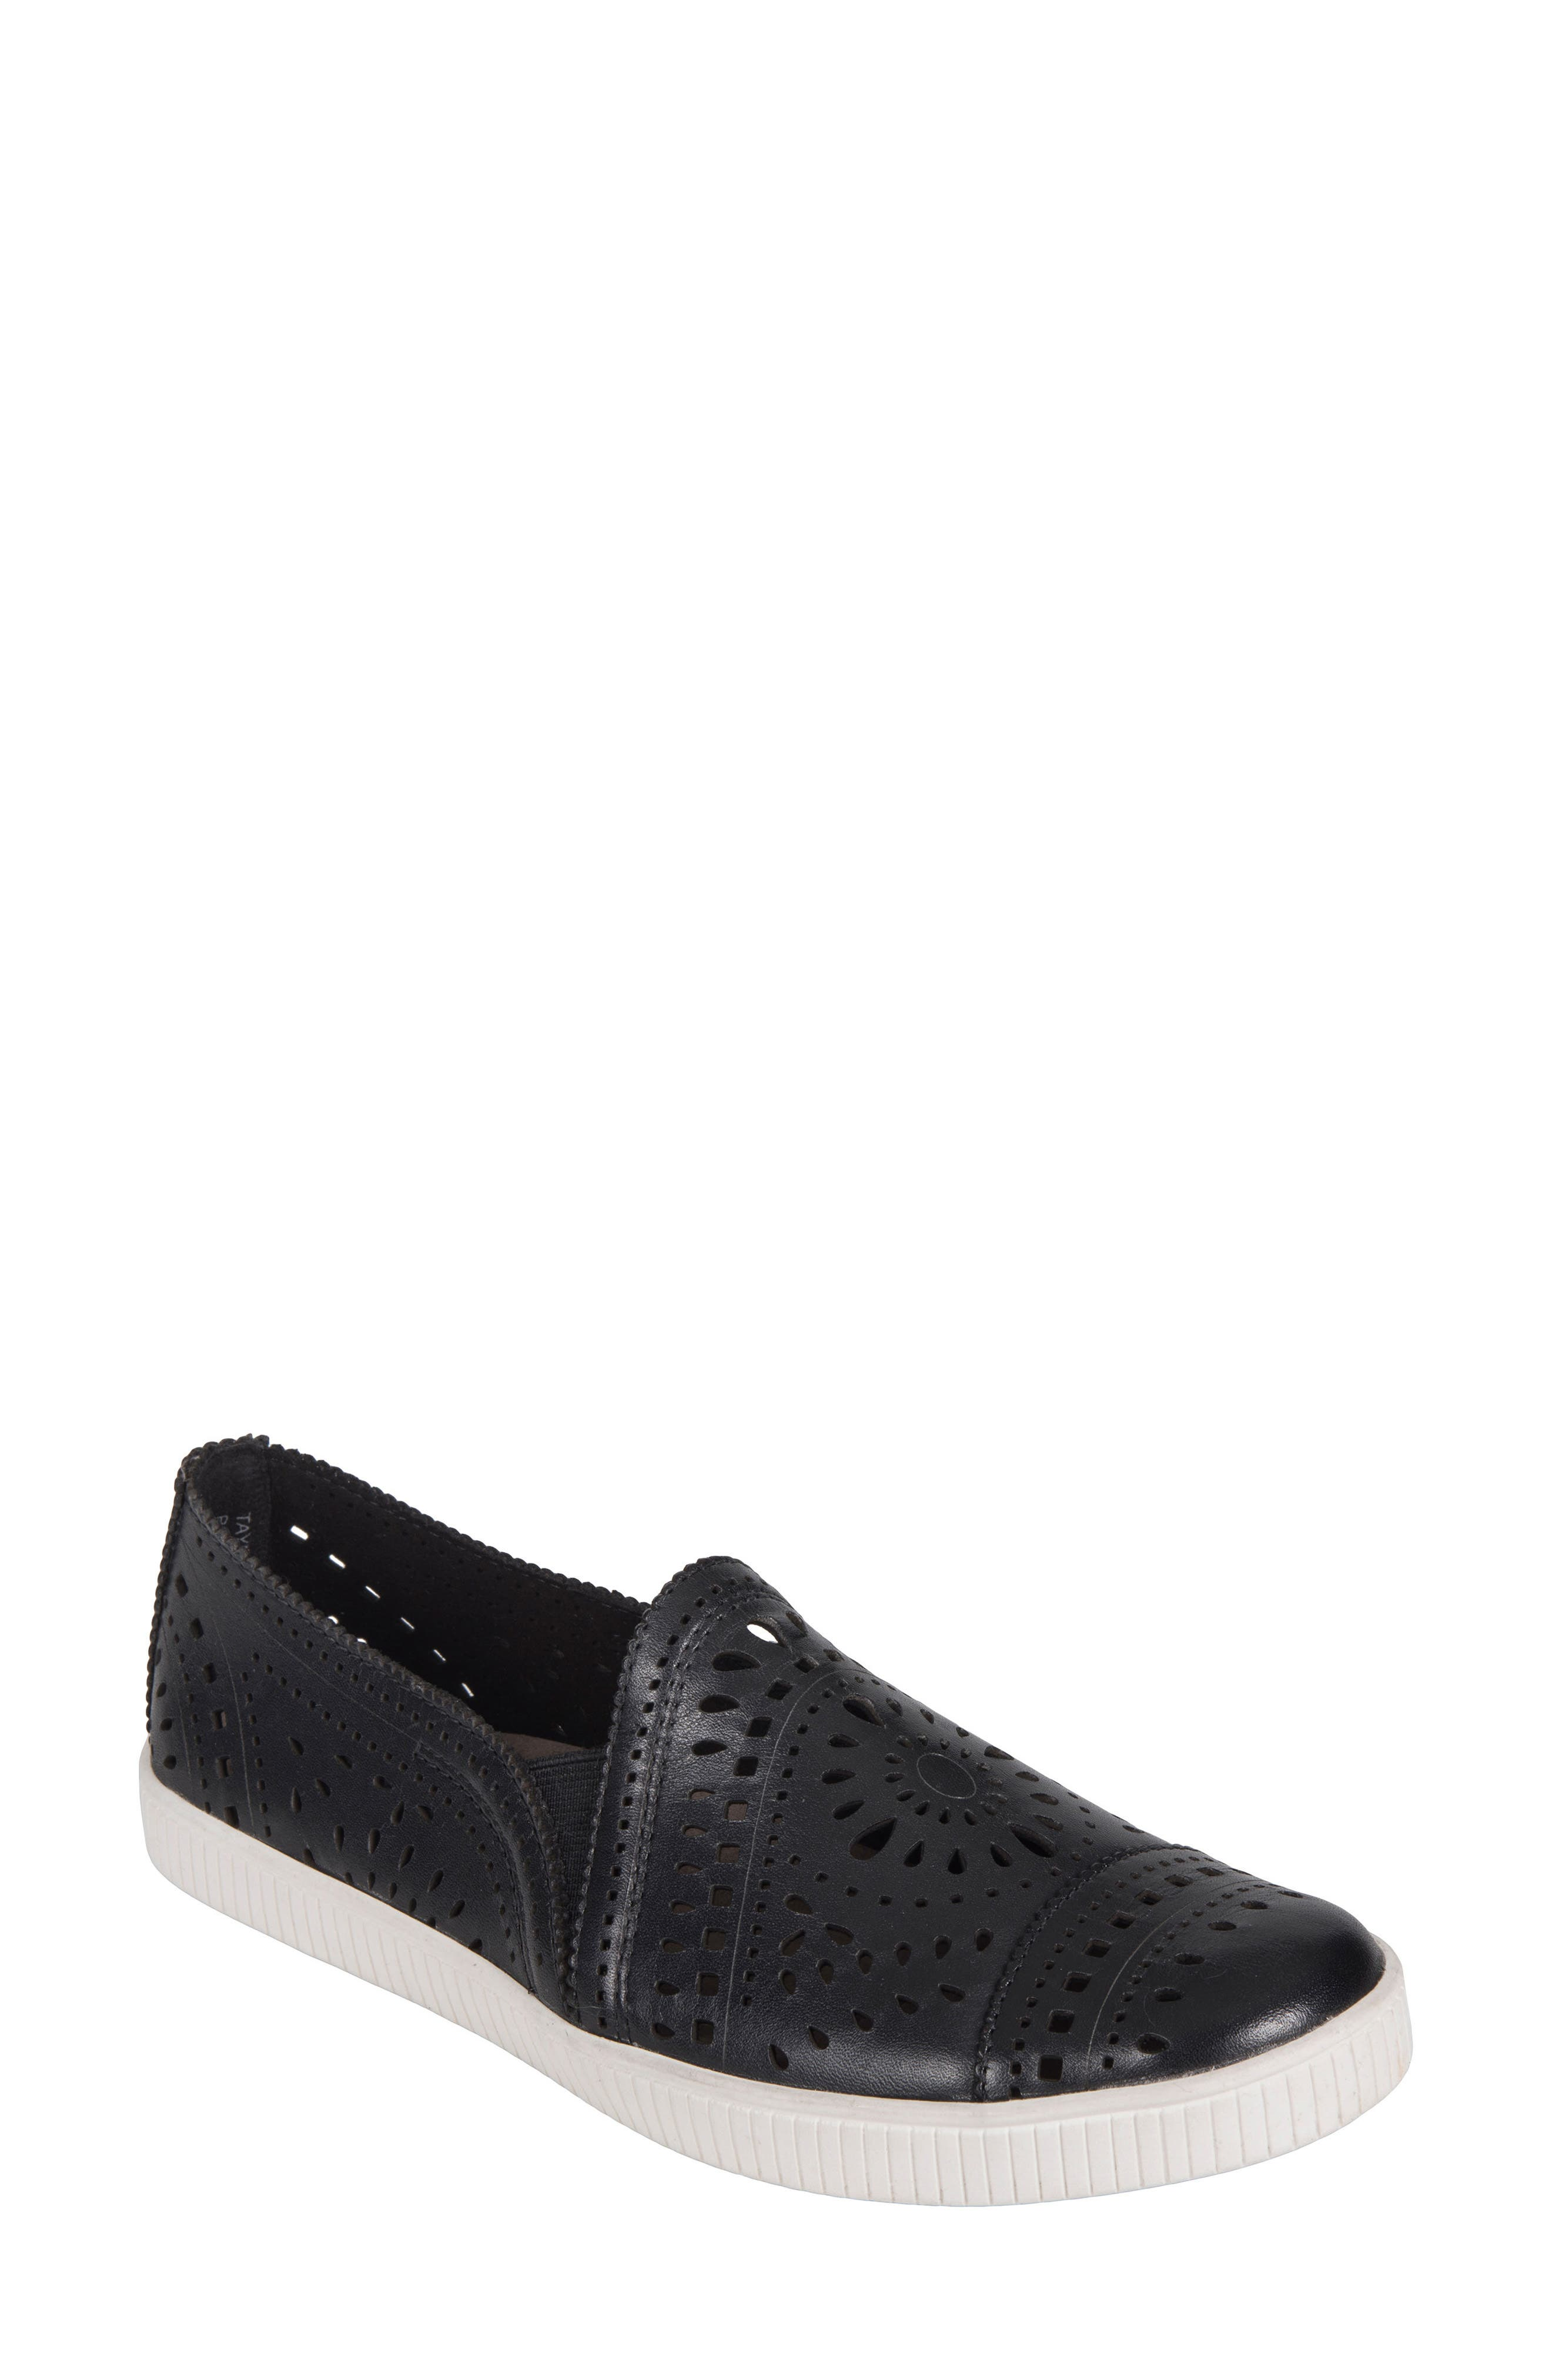 Tayberry Perforated Slip-On Sneaker,                             Main thumbnail 1, color,